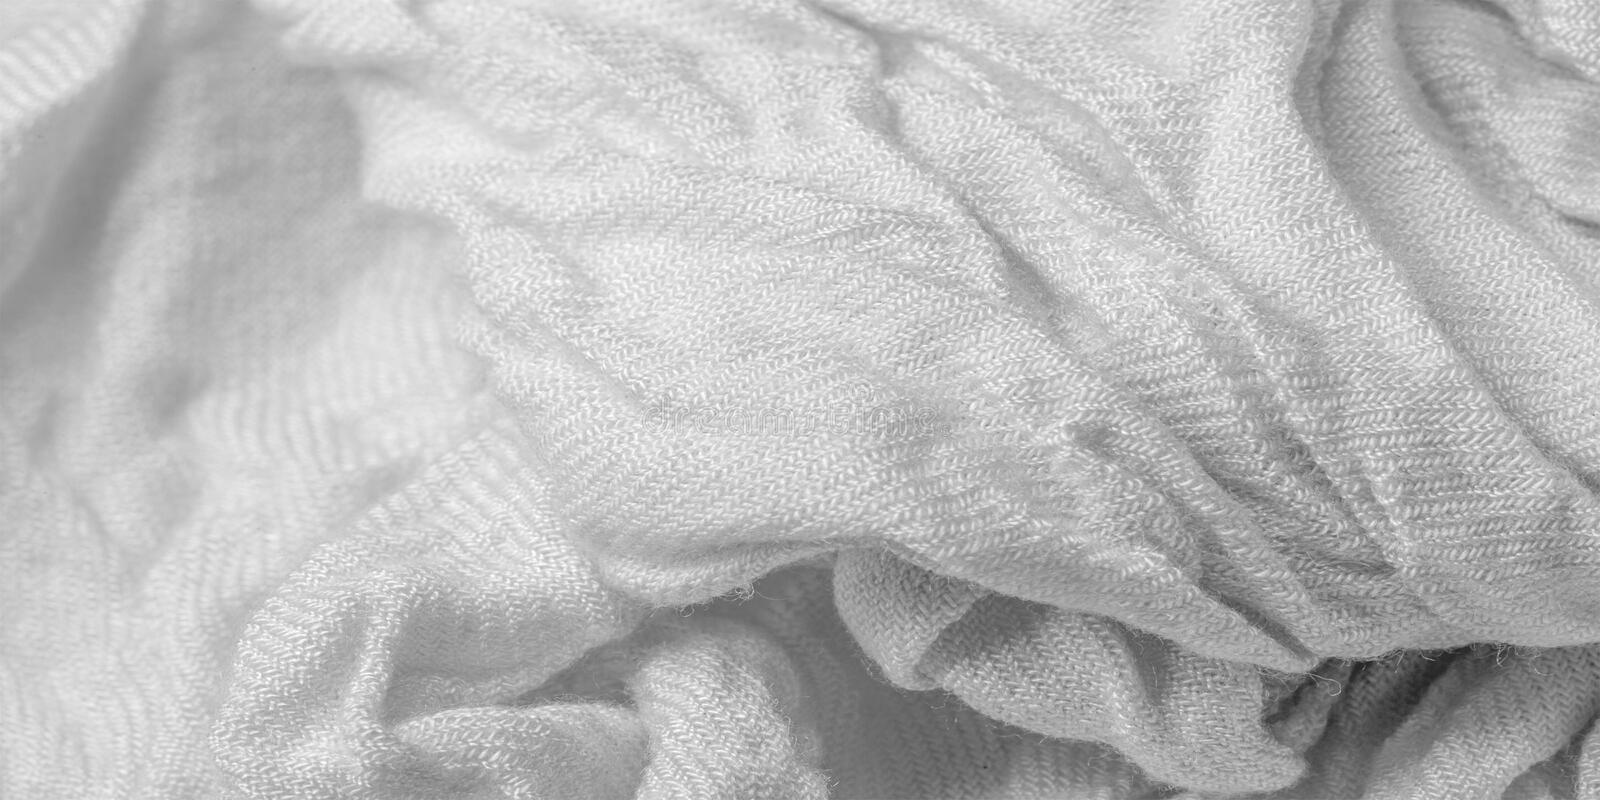 Texture, background, pattern, postcard, silk fabric, white color, isabelline, artificially wrinkled fabric, wrinkled texture,. Texture background pattern stock photography